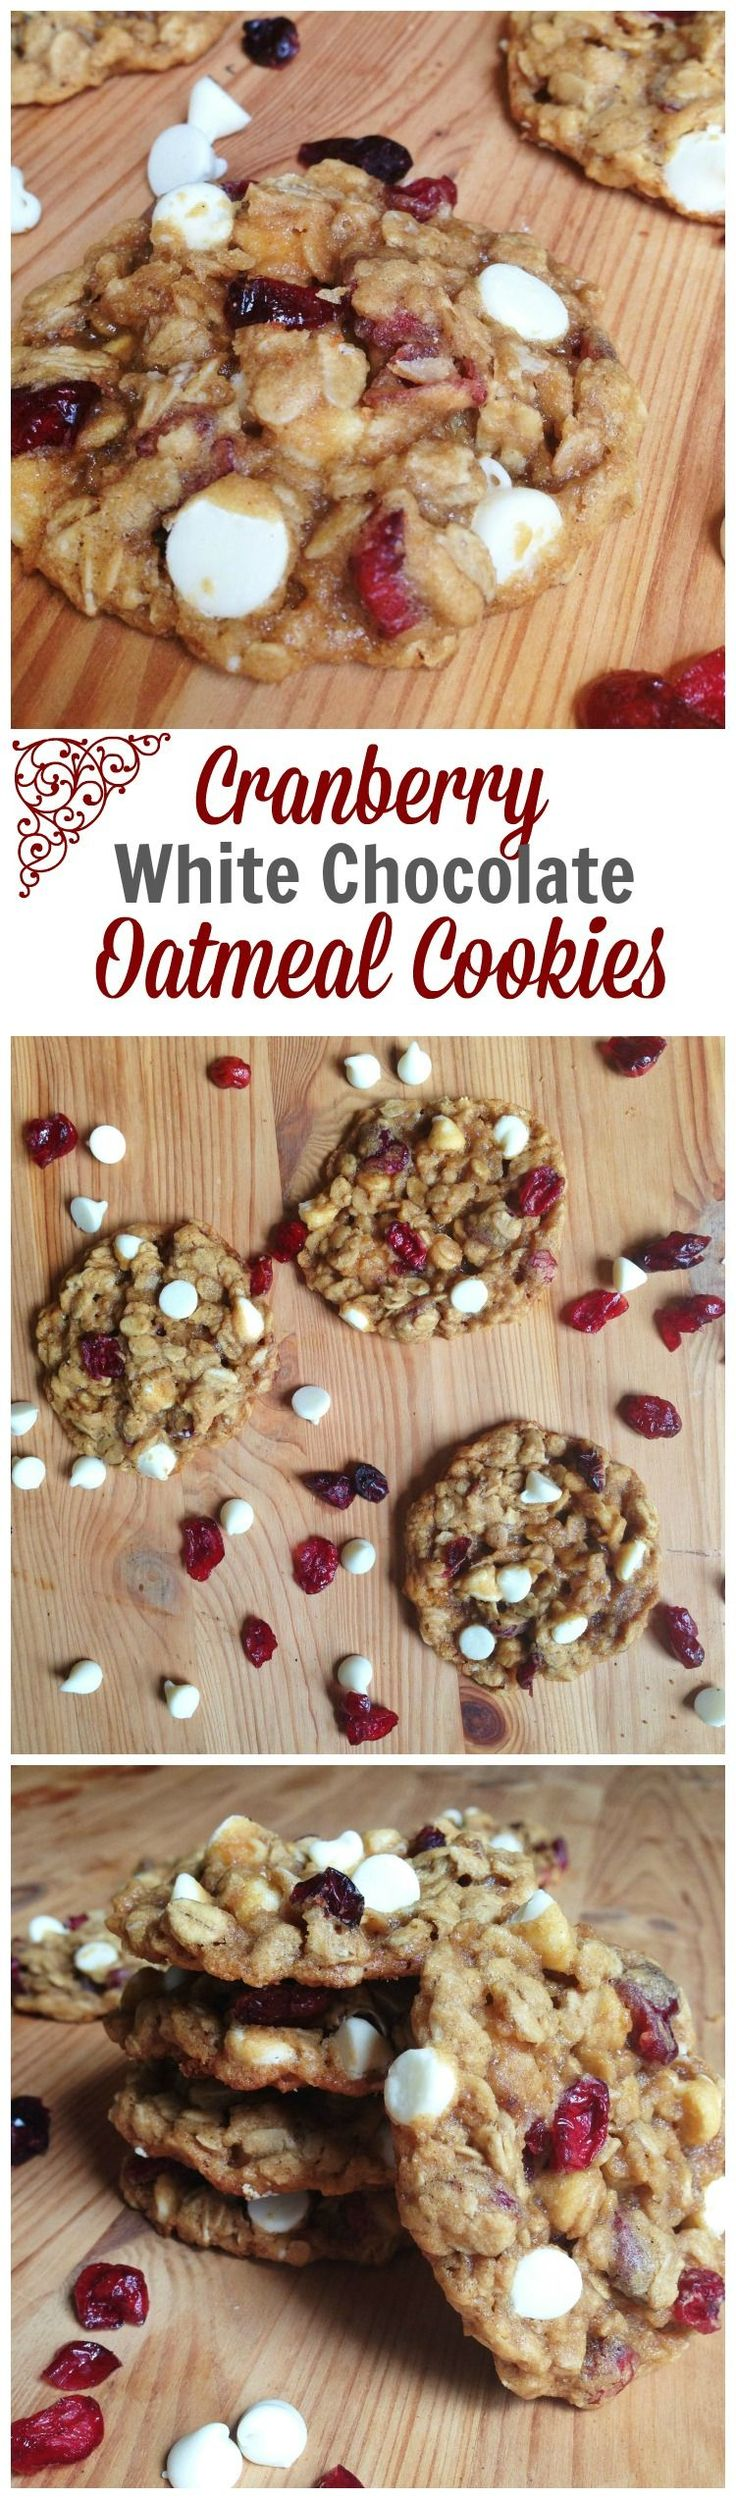 Cranberry White Chocolate Oatmeal Cookies. Cranberries and white chocolate chips take these oatmeal cookies from ordinary to spectacular.